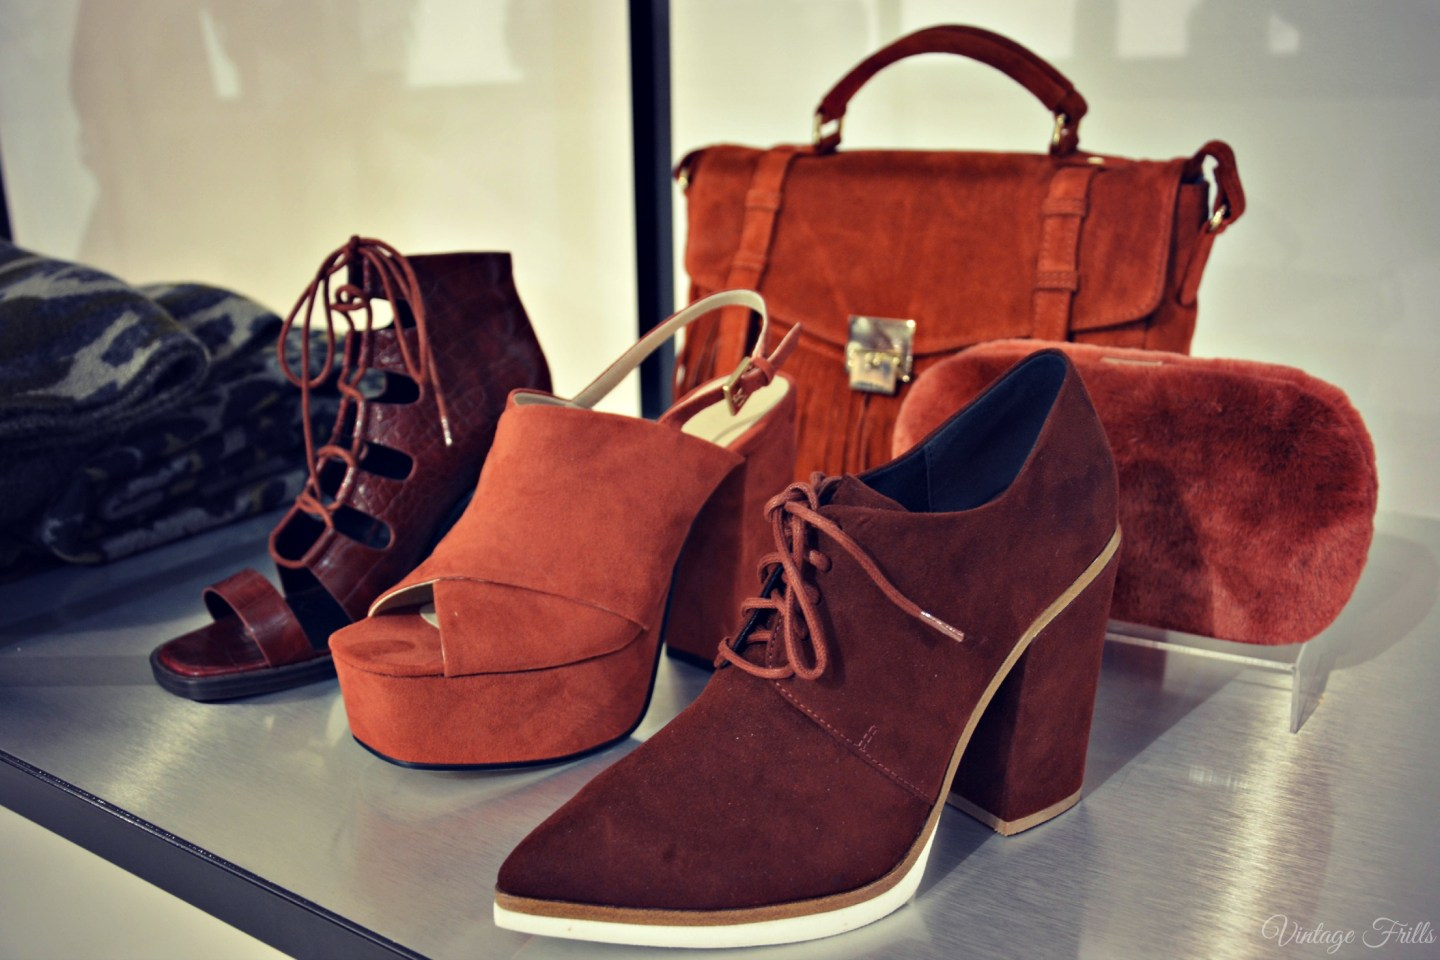 ASOS AW15 Press Day Brown 70s Style Platform Shoes